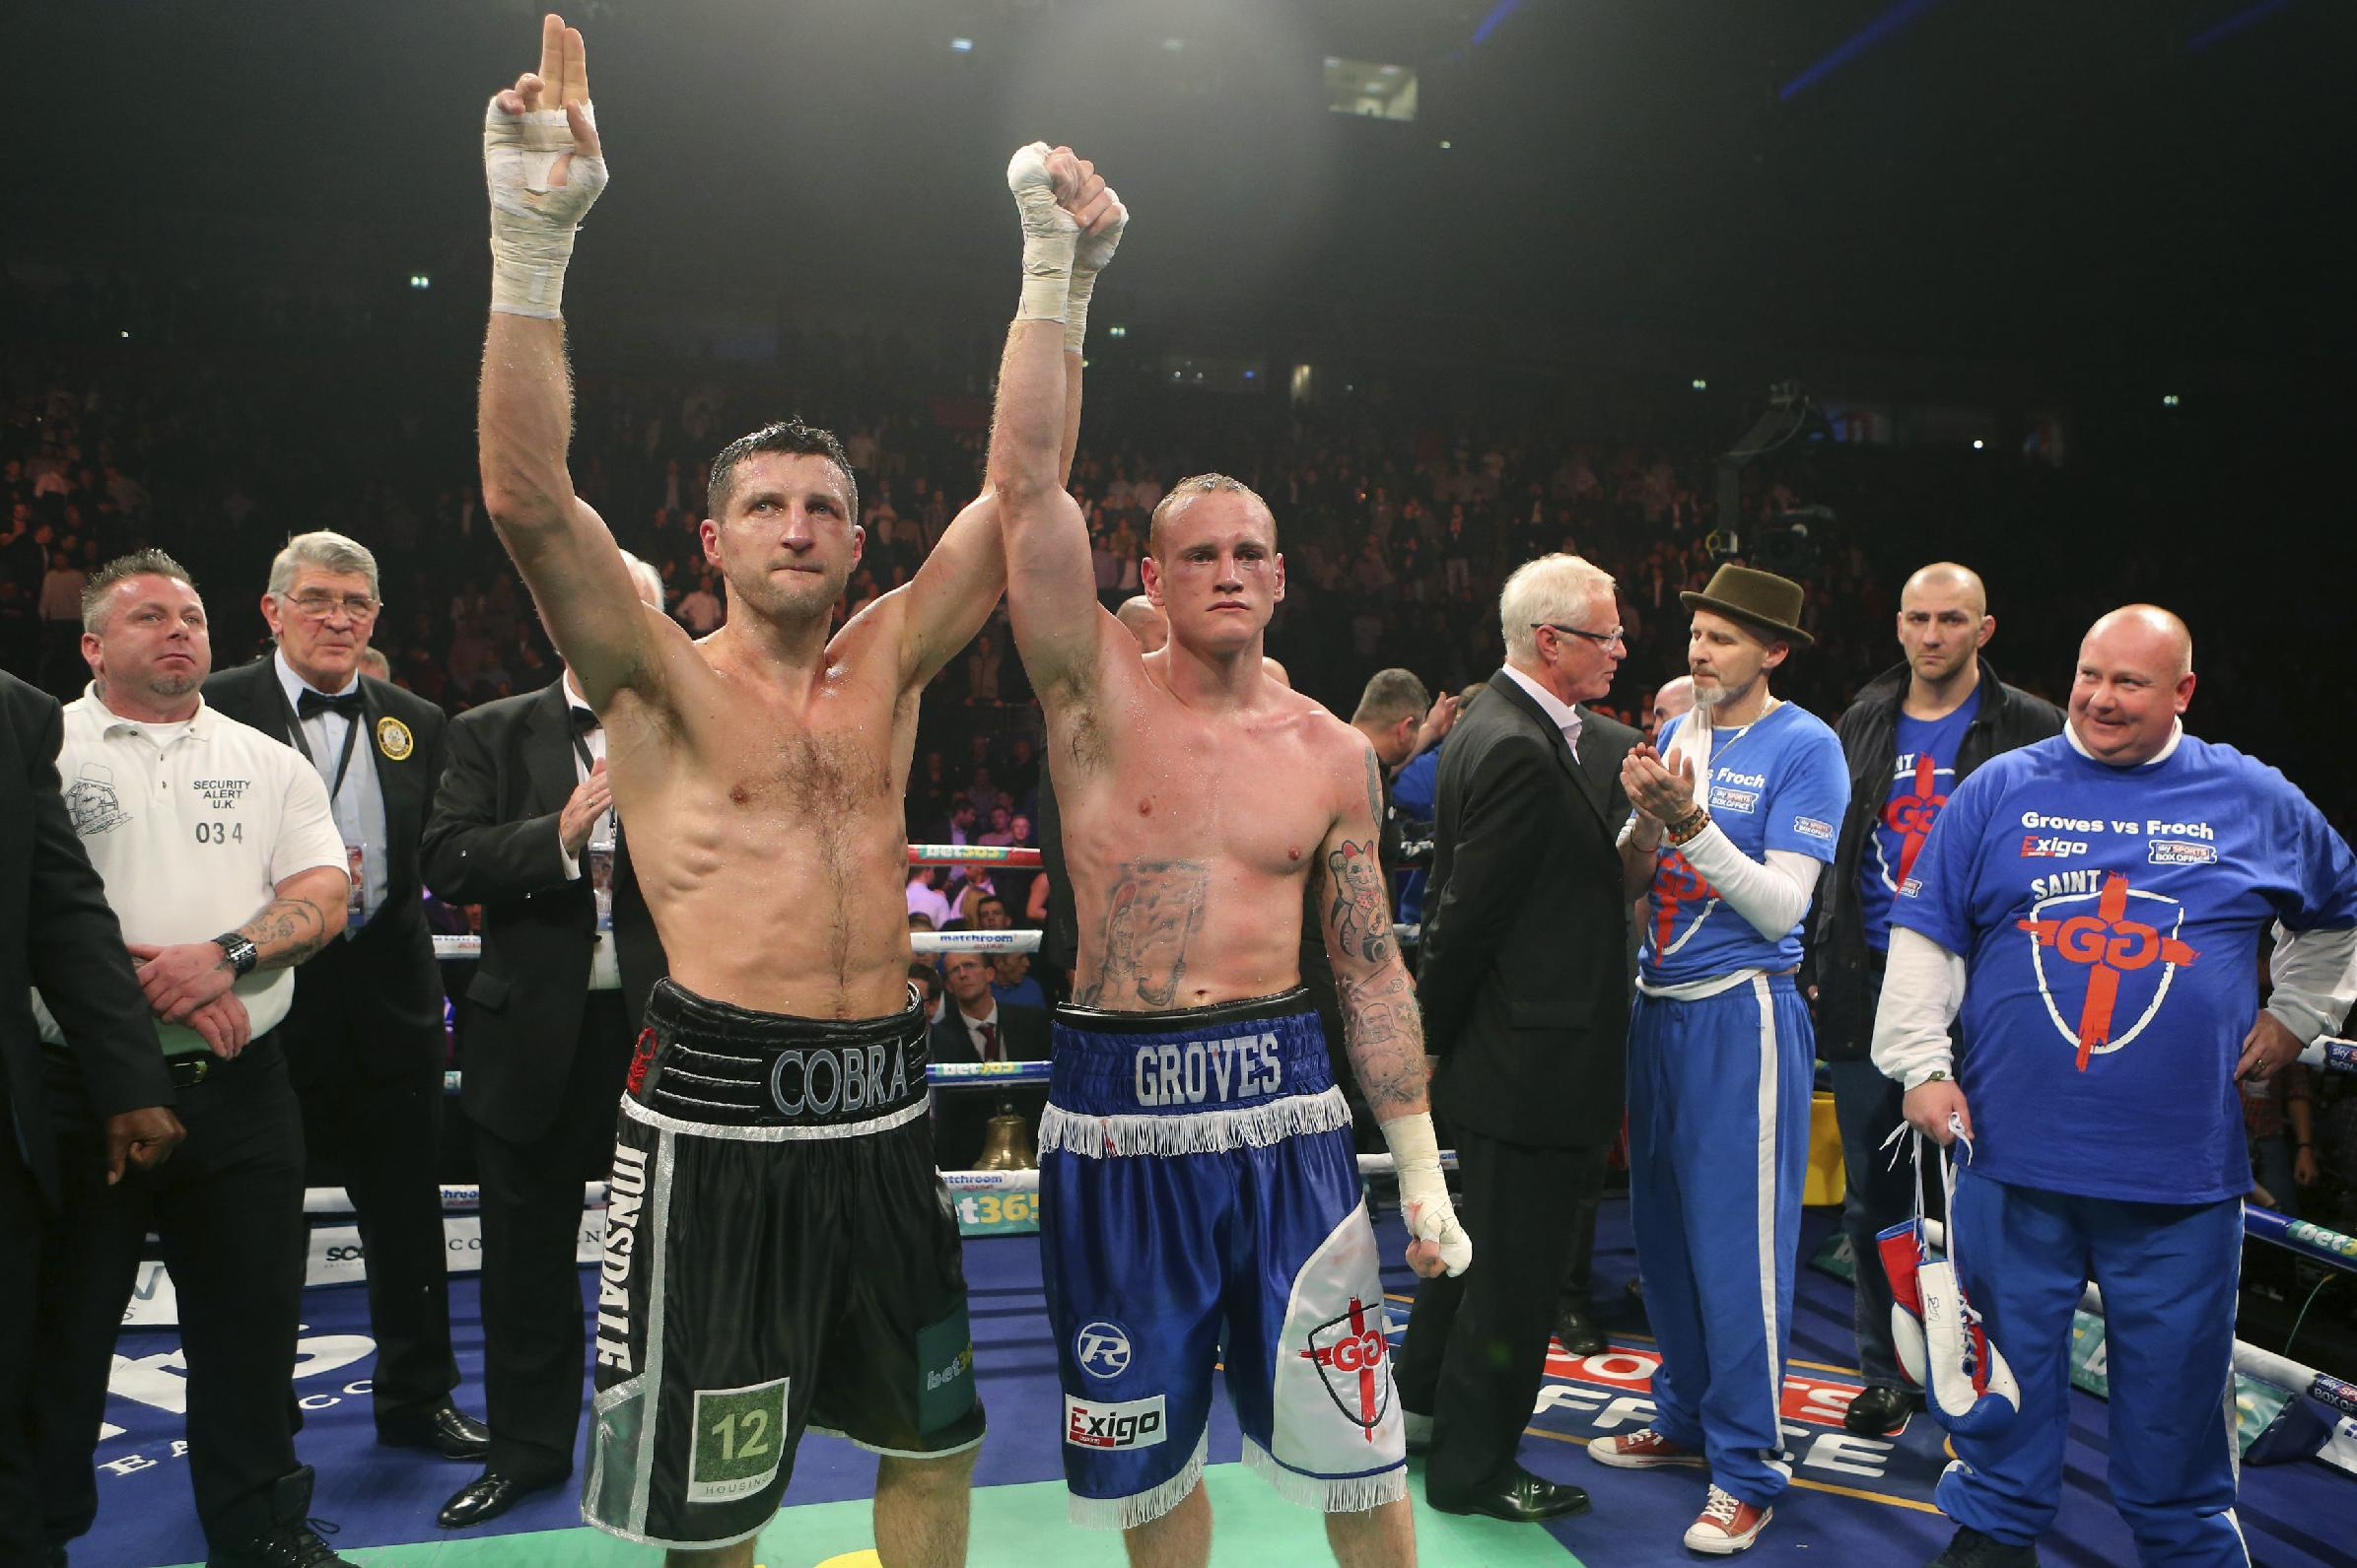 Britain's Carl Froch, left, and compatriot George Groves raise their arms together following their WBA and IBF super-middleweight title fight at the Phones 4u Arena, in Manchester, England, Saturday, Nov. 23, 2013.   Froch recovered from a first-round knockdown to retain his WBA and IBF super-middleweight titles with a ninth-round technical knockout of Groves in an engrossing fight on Saturday